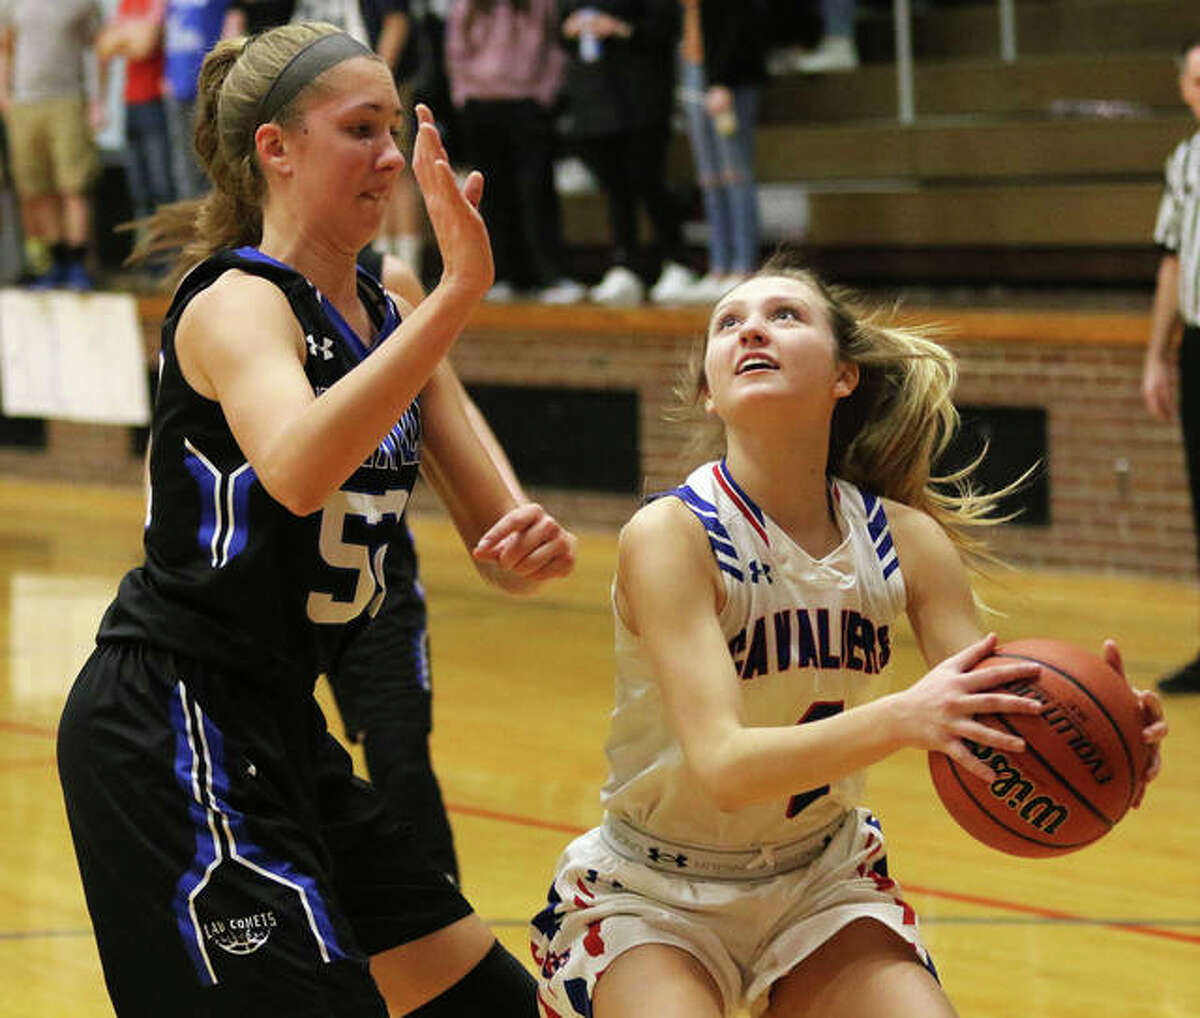 Carlinville's Jill Stayton (right) takes the ball to the basket against Greenville's 6-foot-4 Megan Hallemann during the Cavaliers' SCC victory Thursday night in Carlinville. While the Cavs are back home this week for a Class 2A regional, the Comets open postseason play in Carlyle.